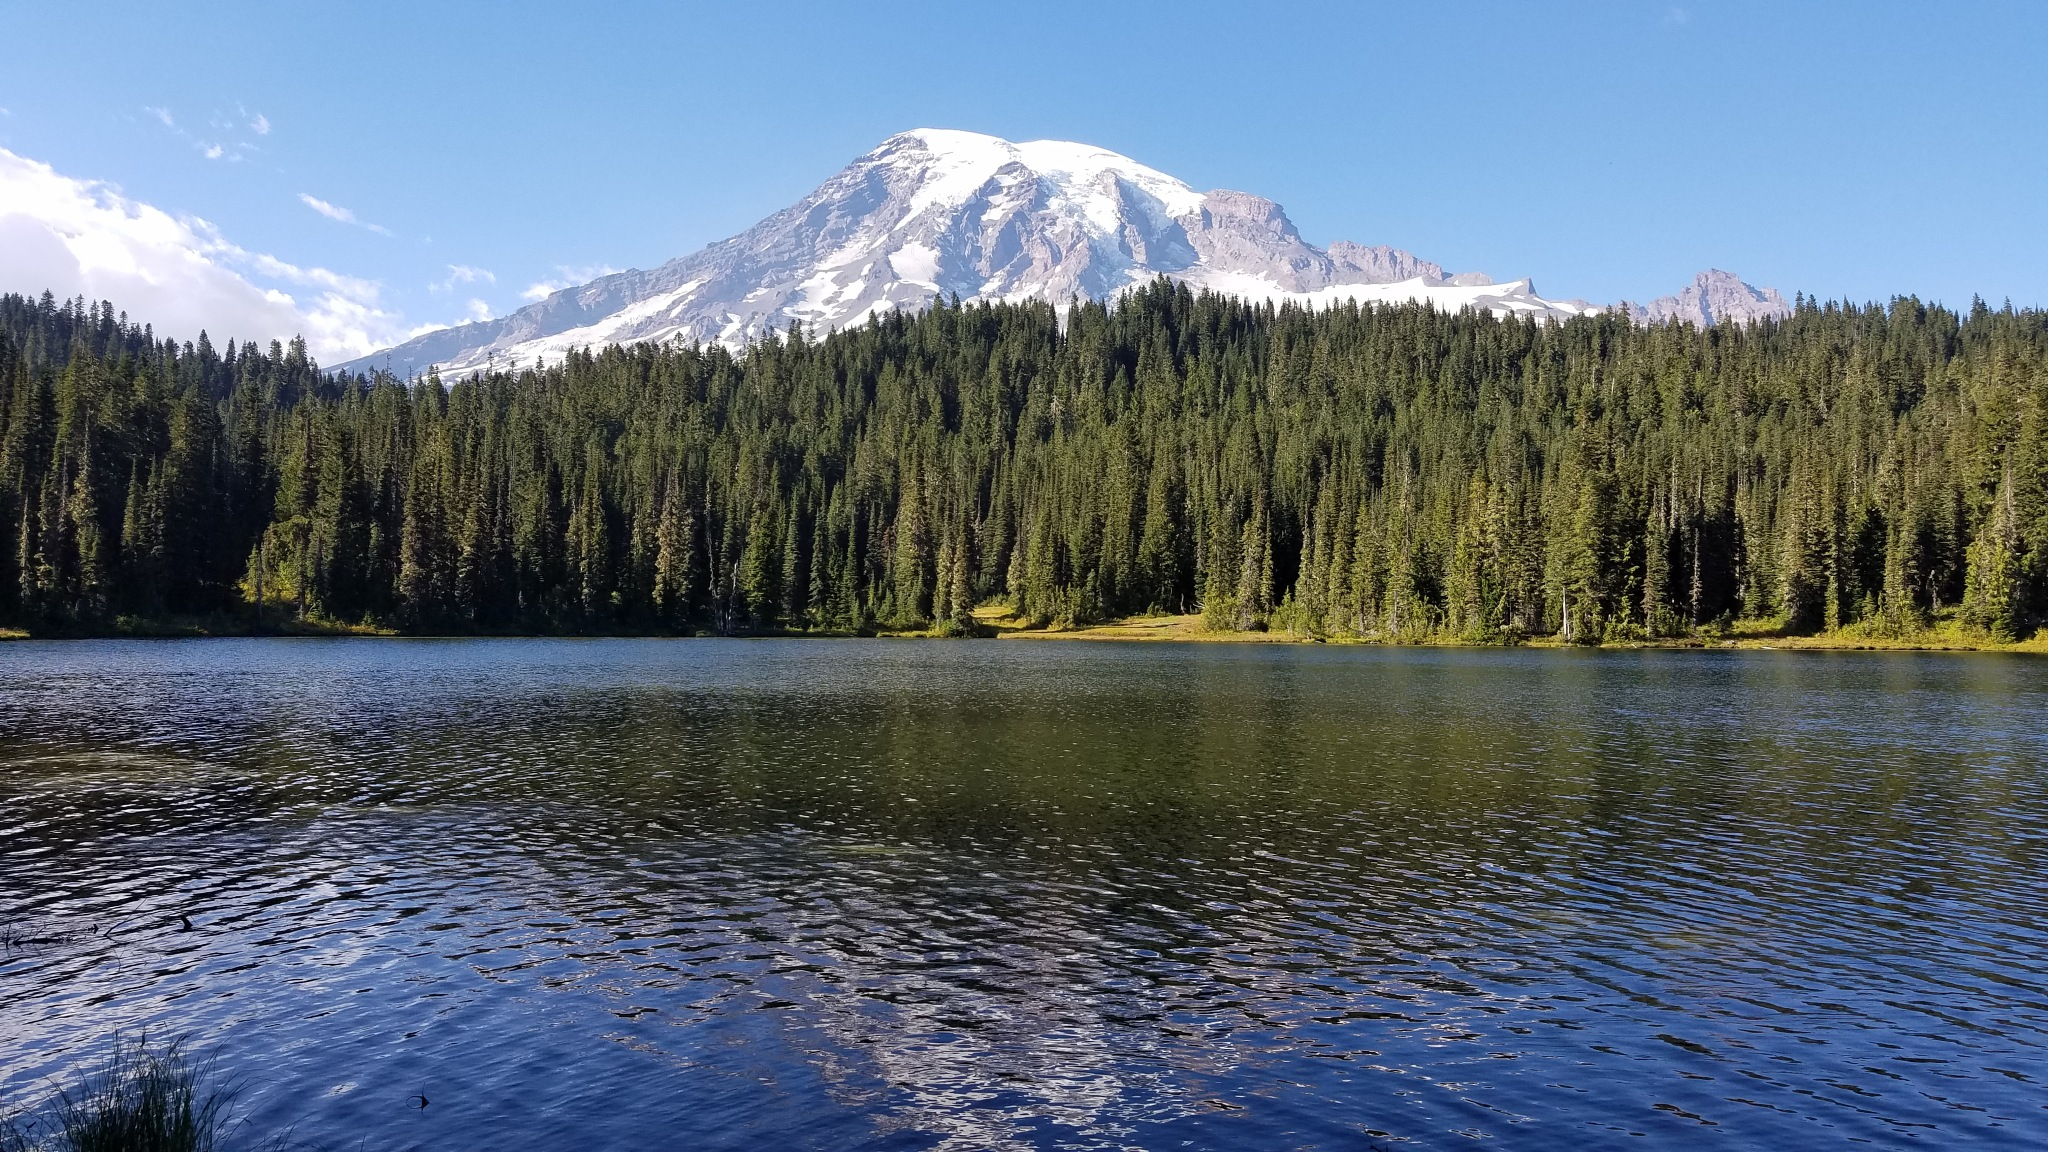 Mirror Lake with Mount Rainier in the background  by cariealbers